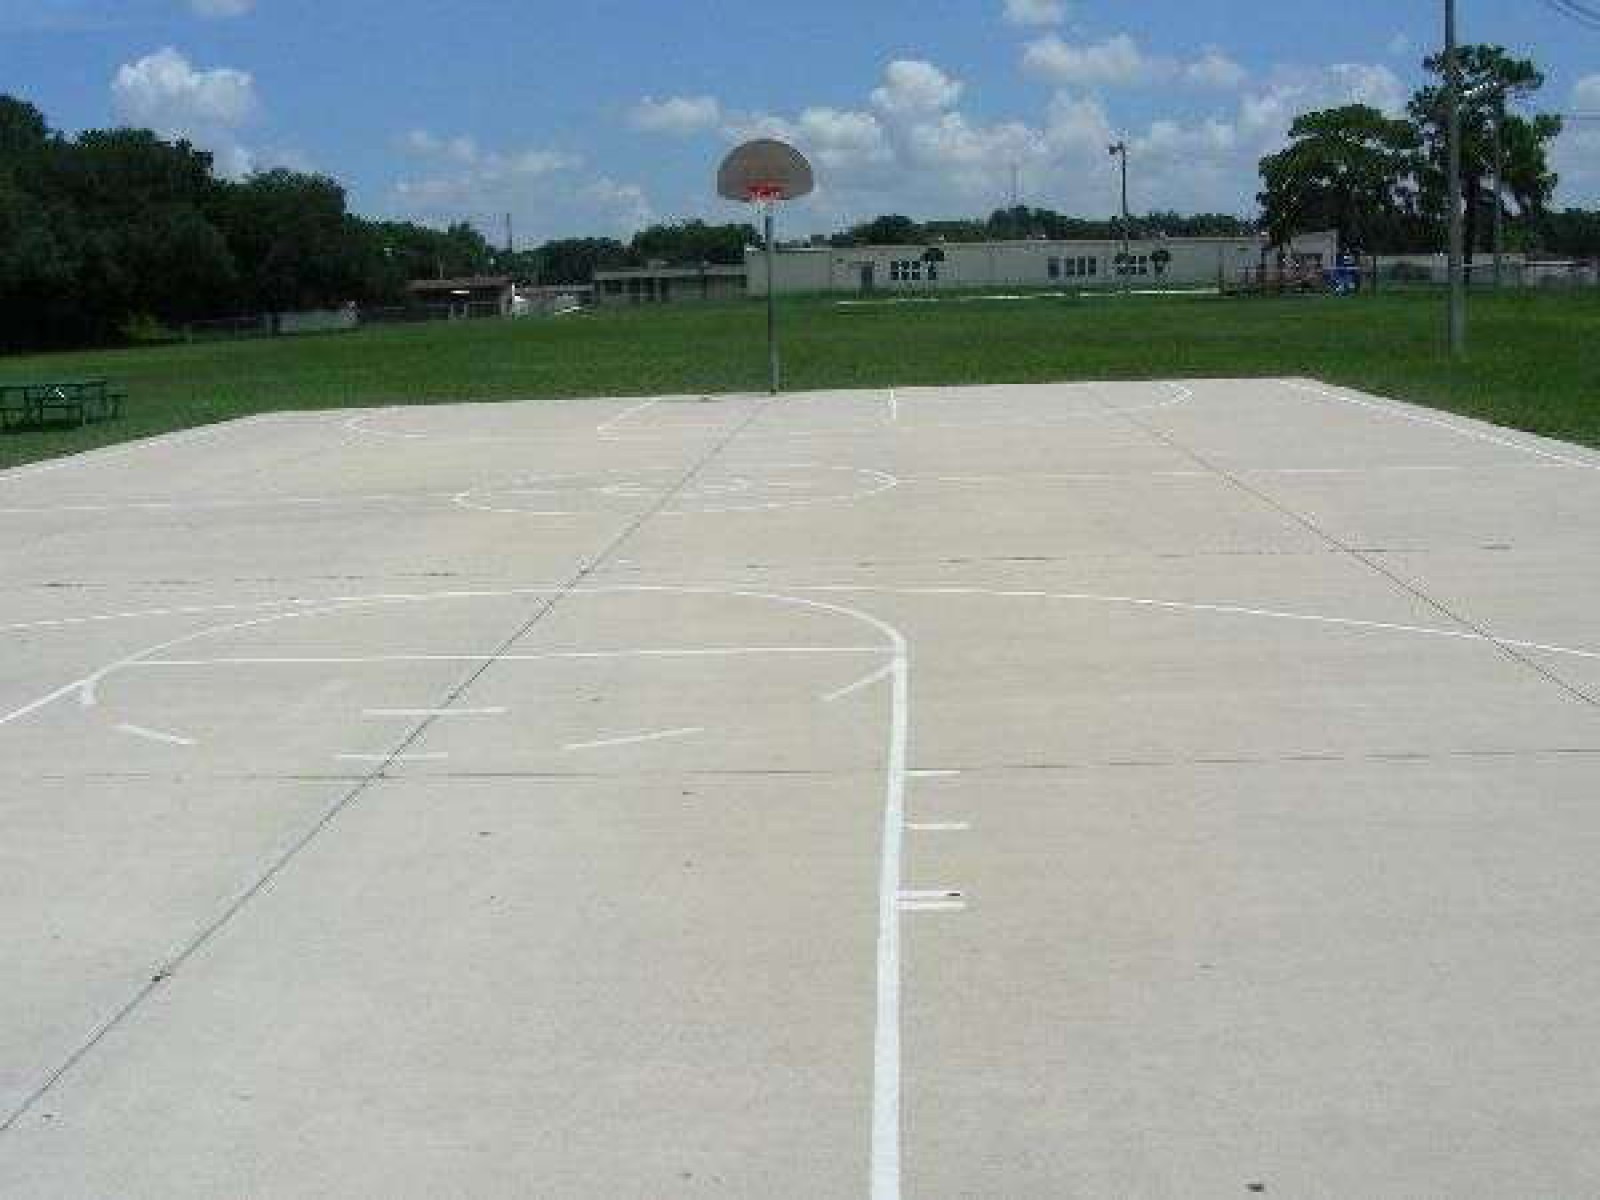 Riverview Basketball Court, Riverview, FL, United States